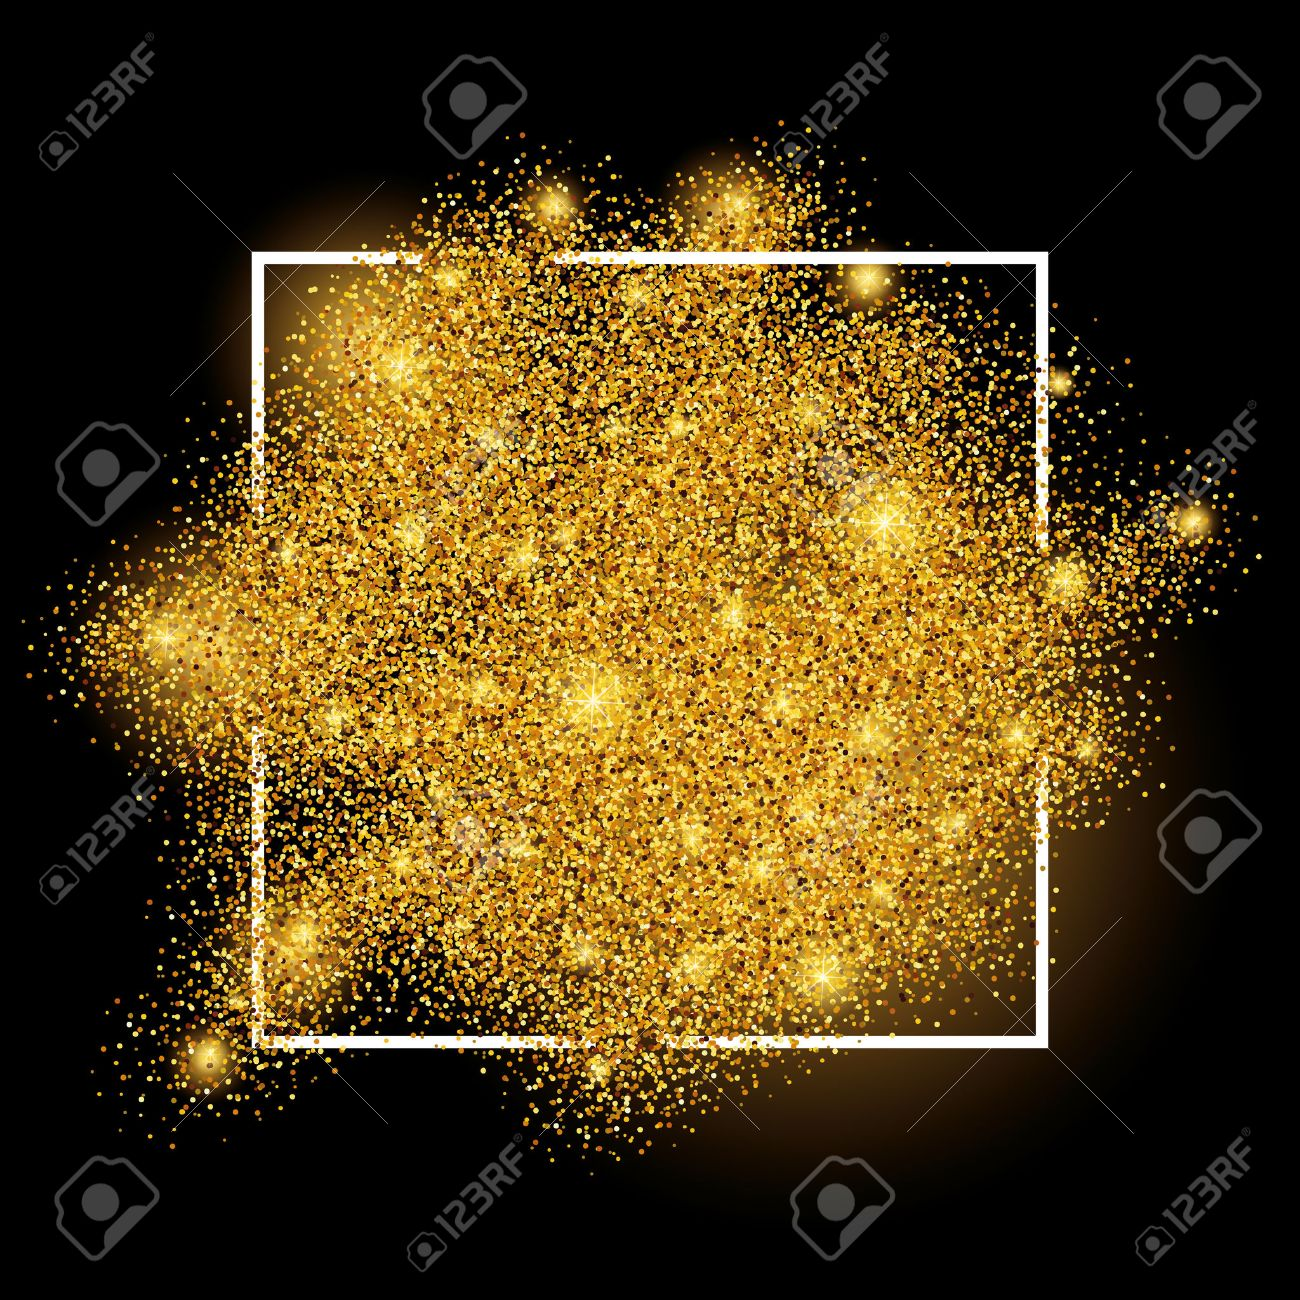 Gold sparkles on white background in frame. Gold glitter background. Gold background for card, vip, exclusive, certificate, gift, luxury, privilege, voucher, store, present, shopping. - 52579344